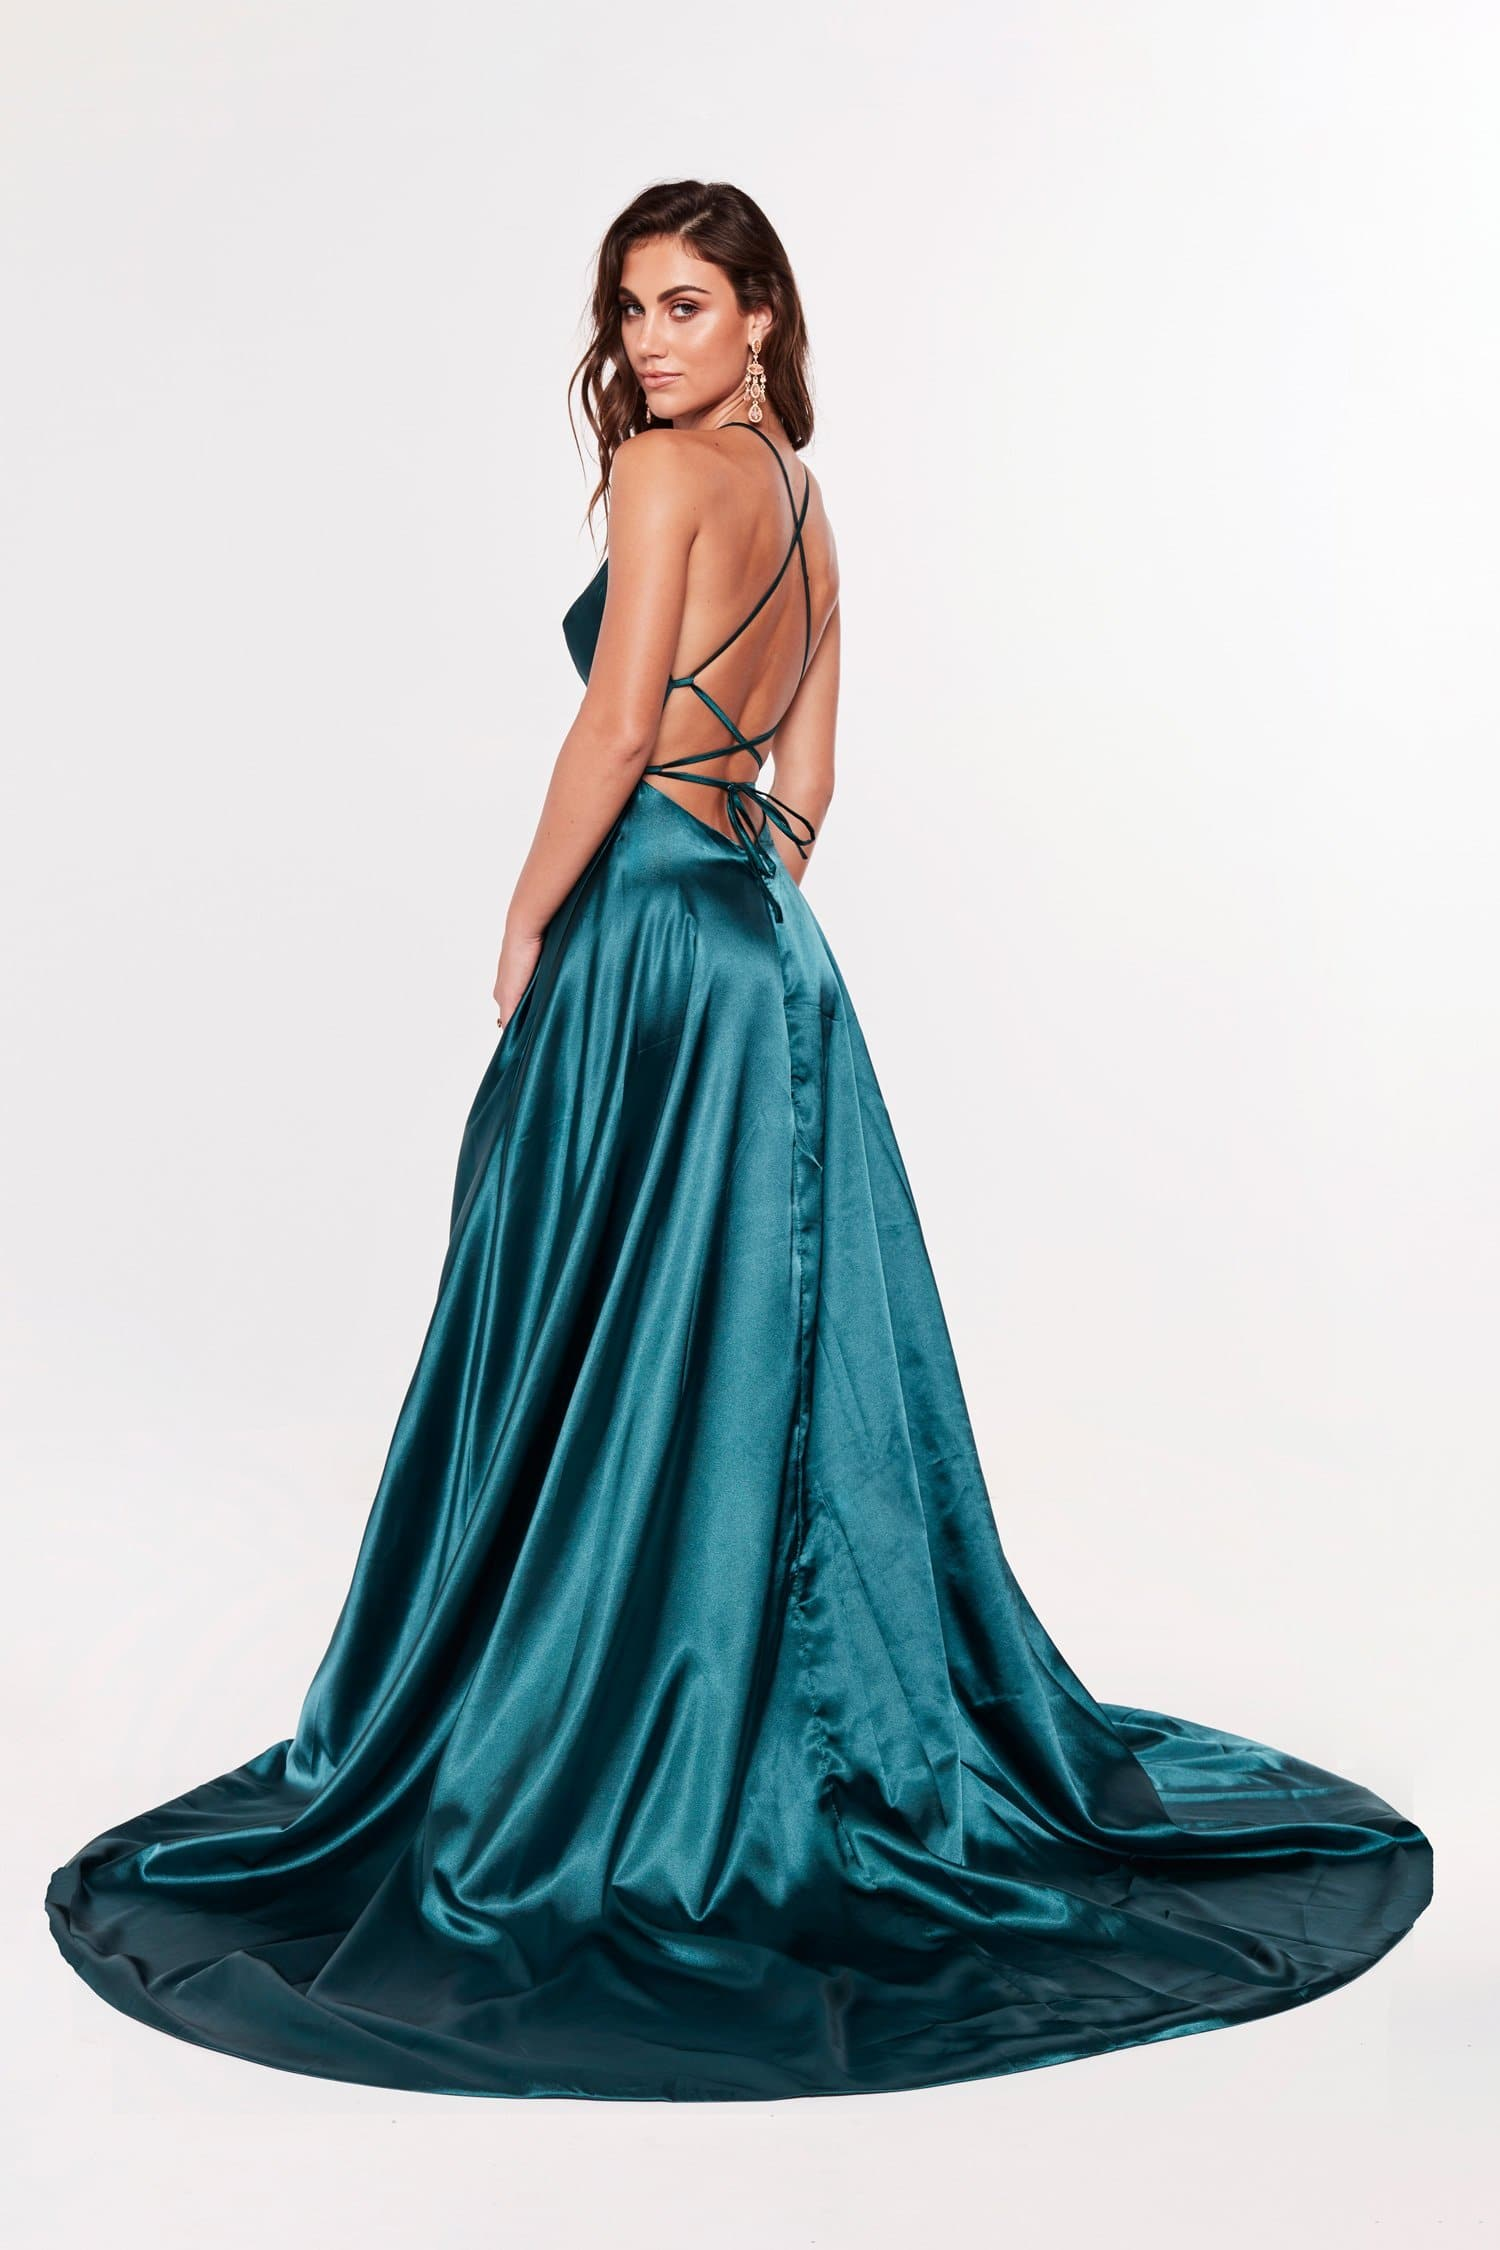 A&N Luxe Dimah Satin Lace Up Gown - Teal